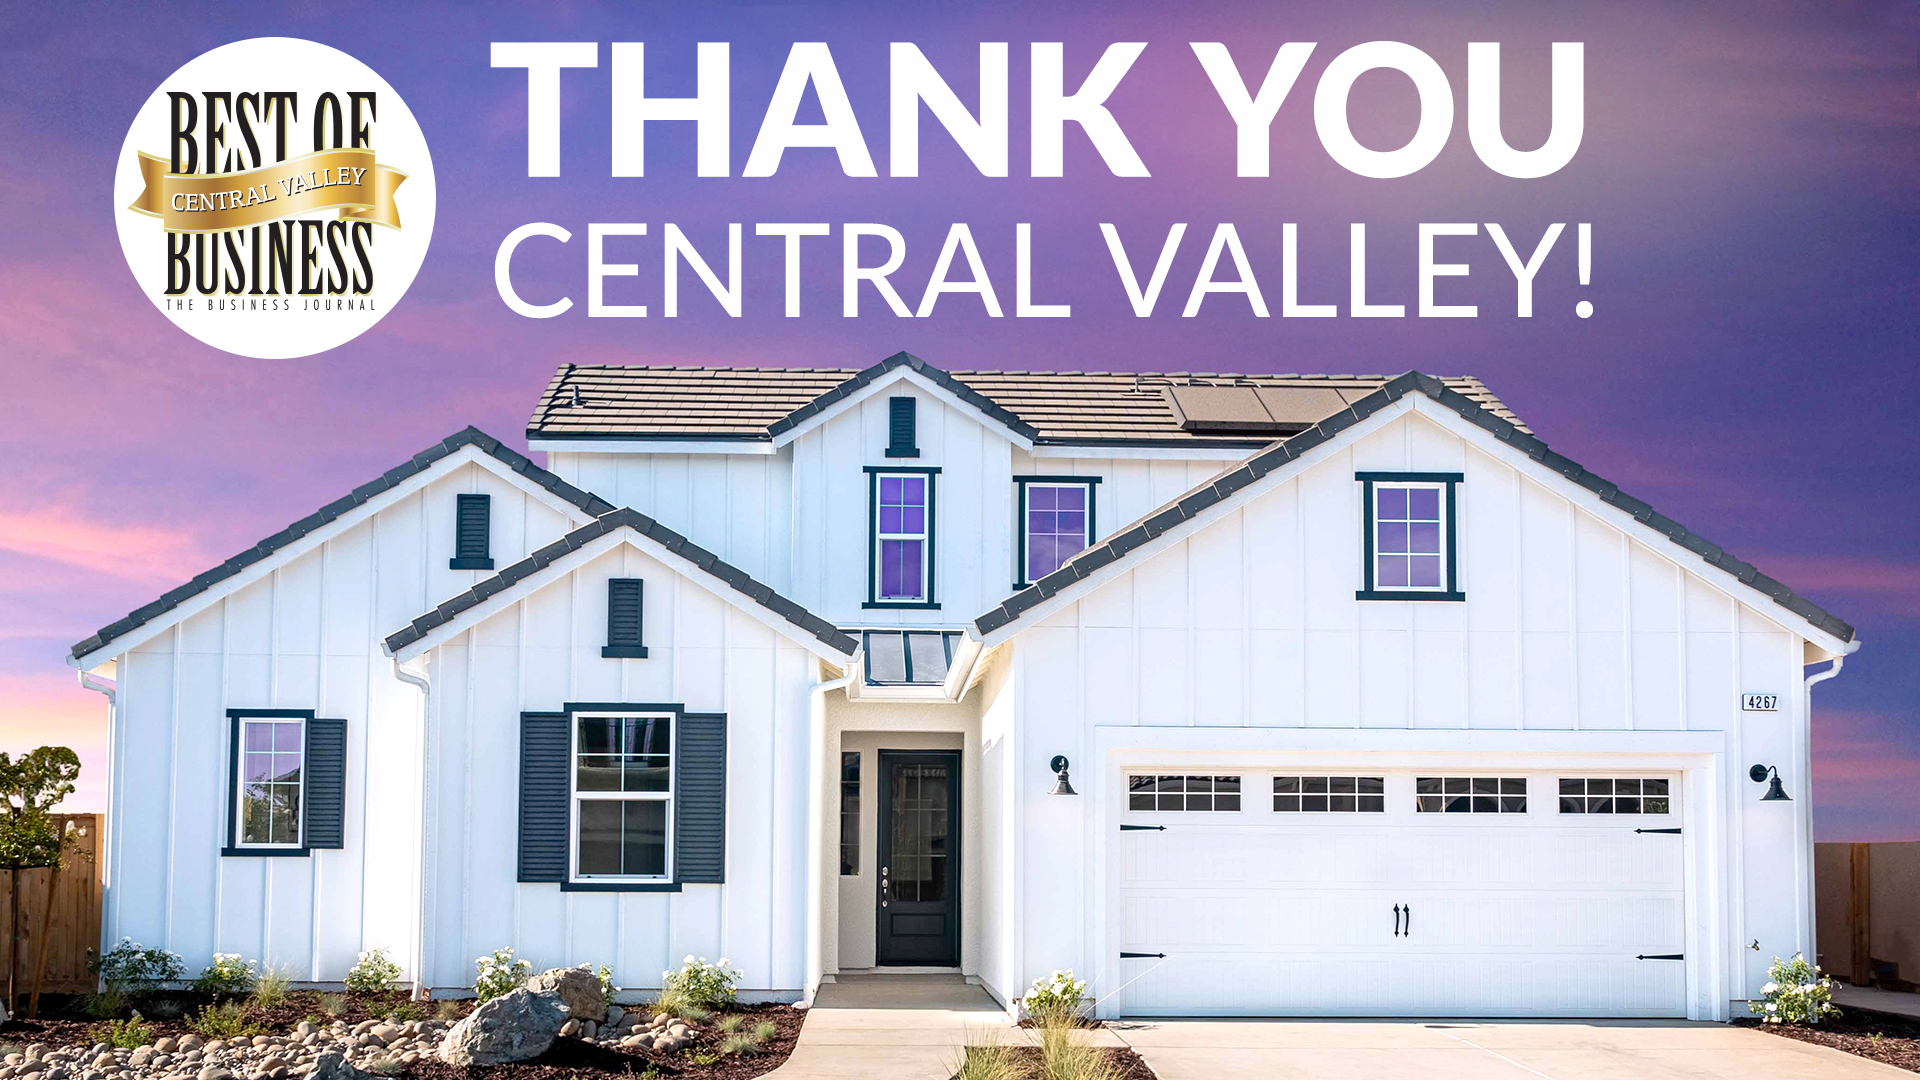 DeYoung Properties Once Again Honored with Best of Central Valley Business 2019 Award Recognition